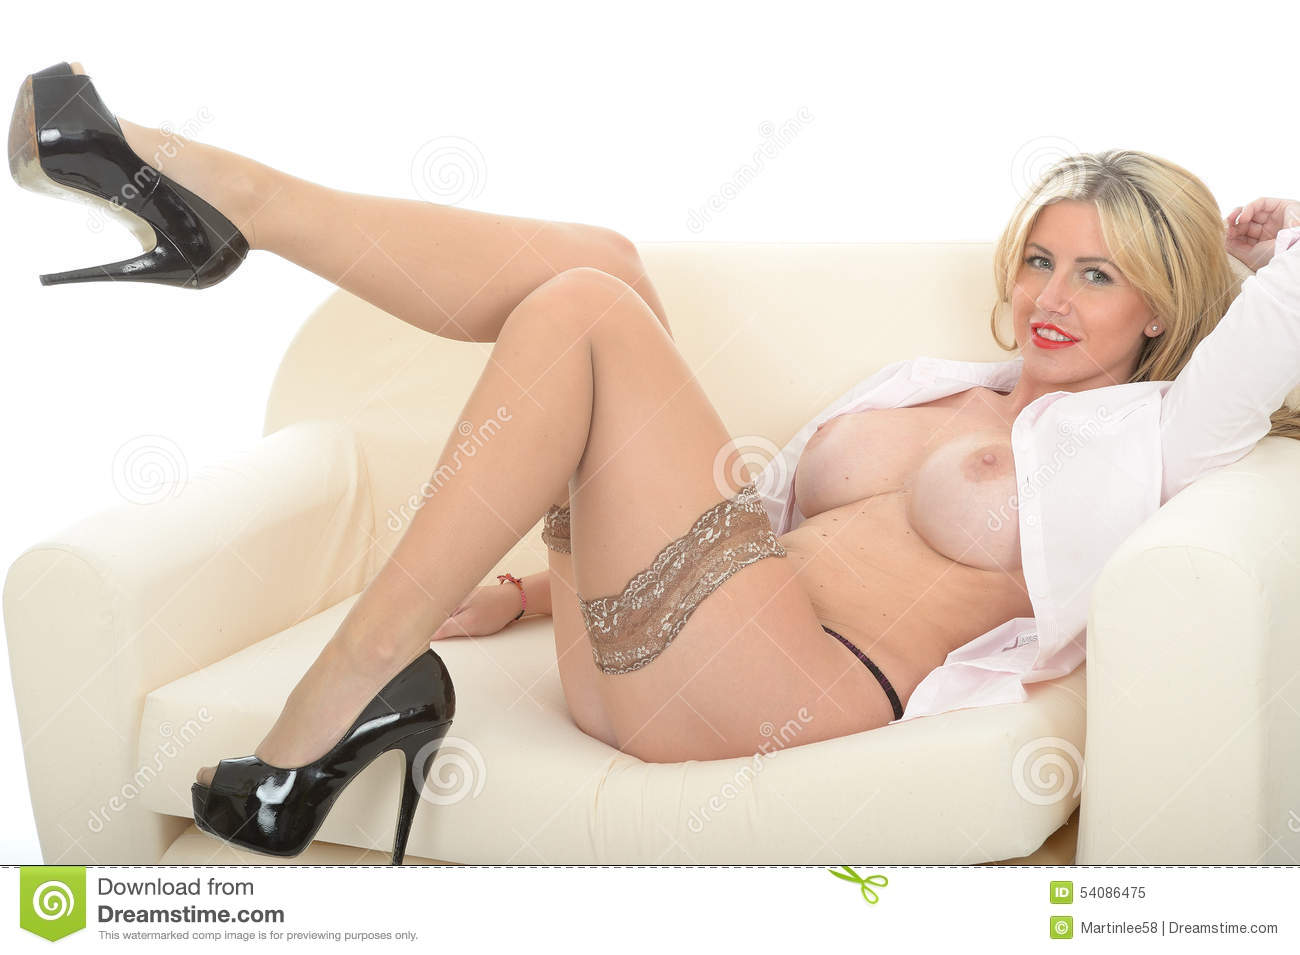 Mooi Sexy Betoverend Wellustig Jong Blonde Pin Up Model Posing Topless